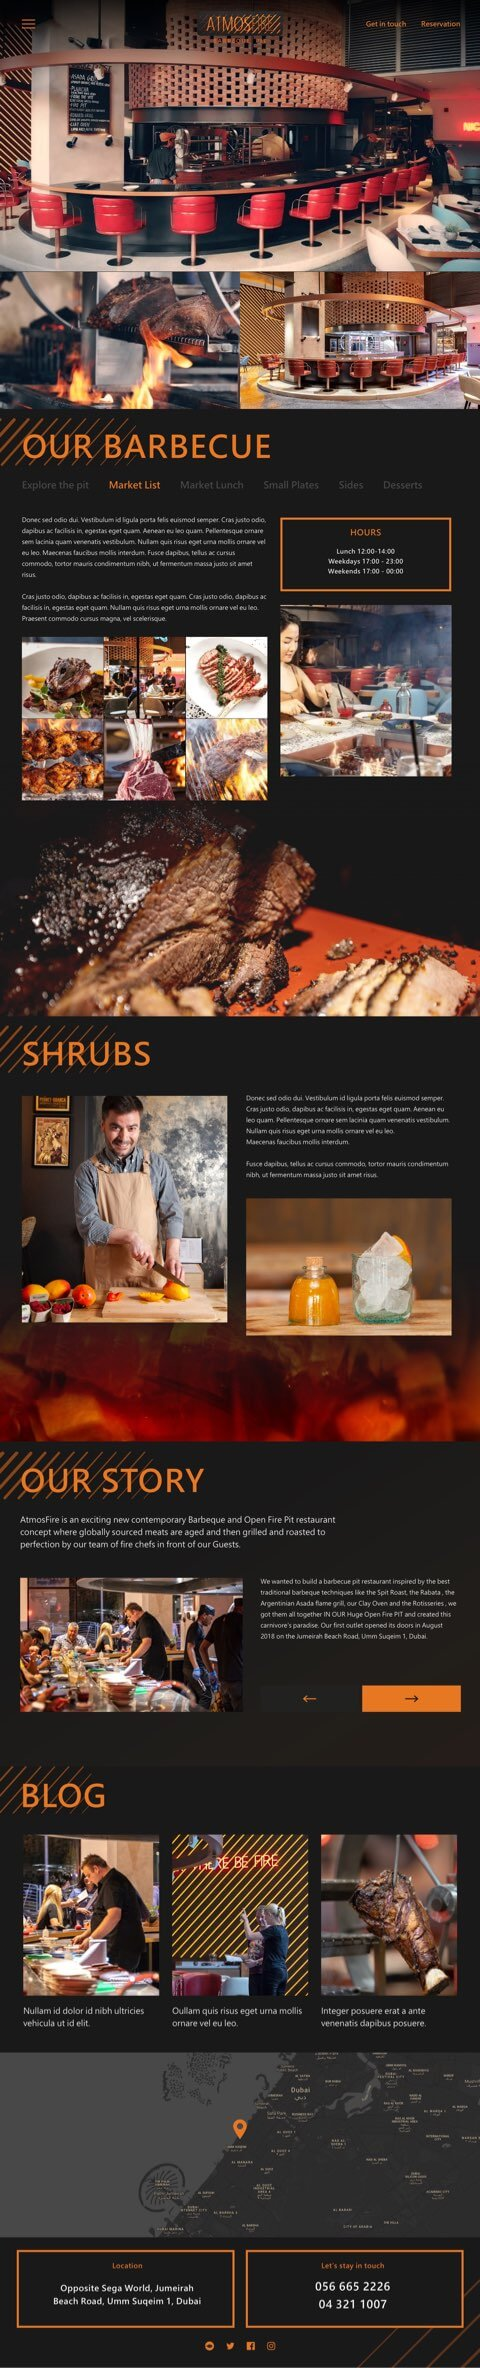 Dubai restaurant website design